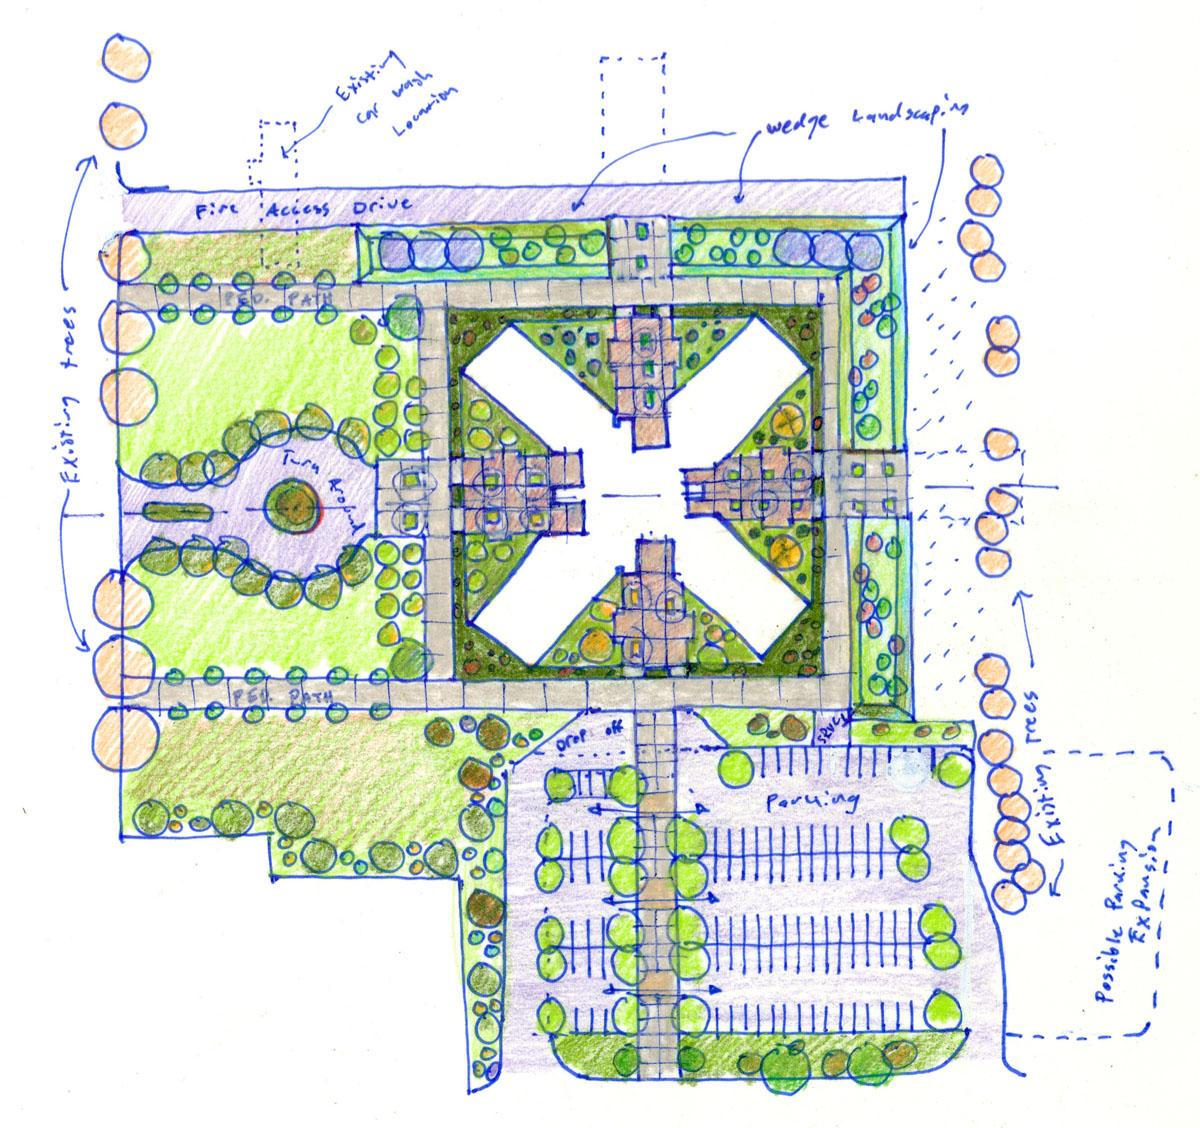 Colored sketch of the site plan showing where parking lots, roadways, and landscaping will go with the campus starter concept building in the middle.